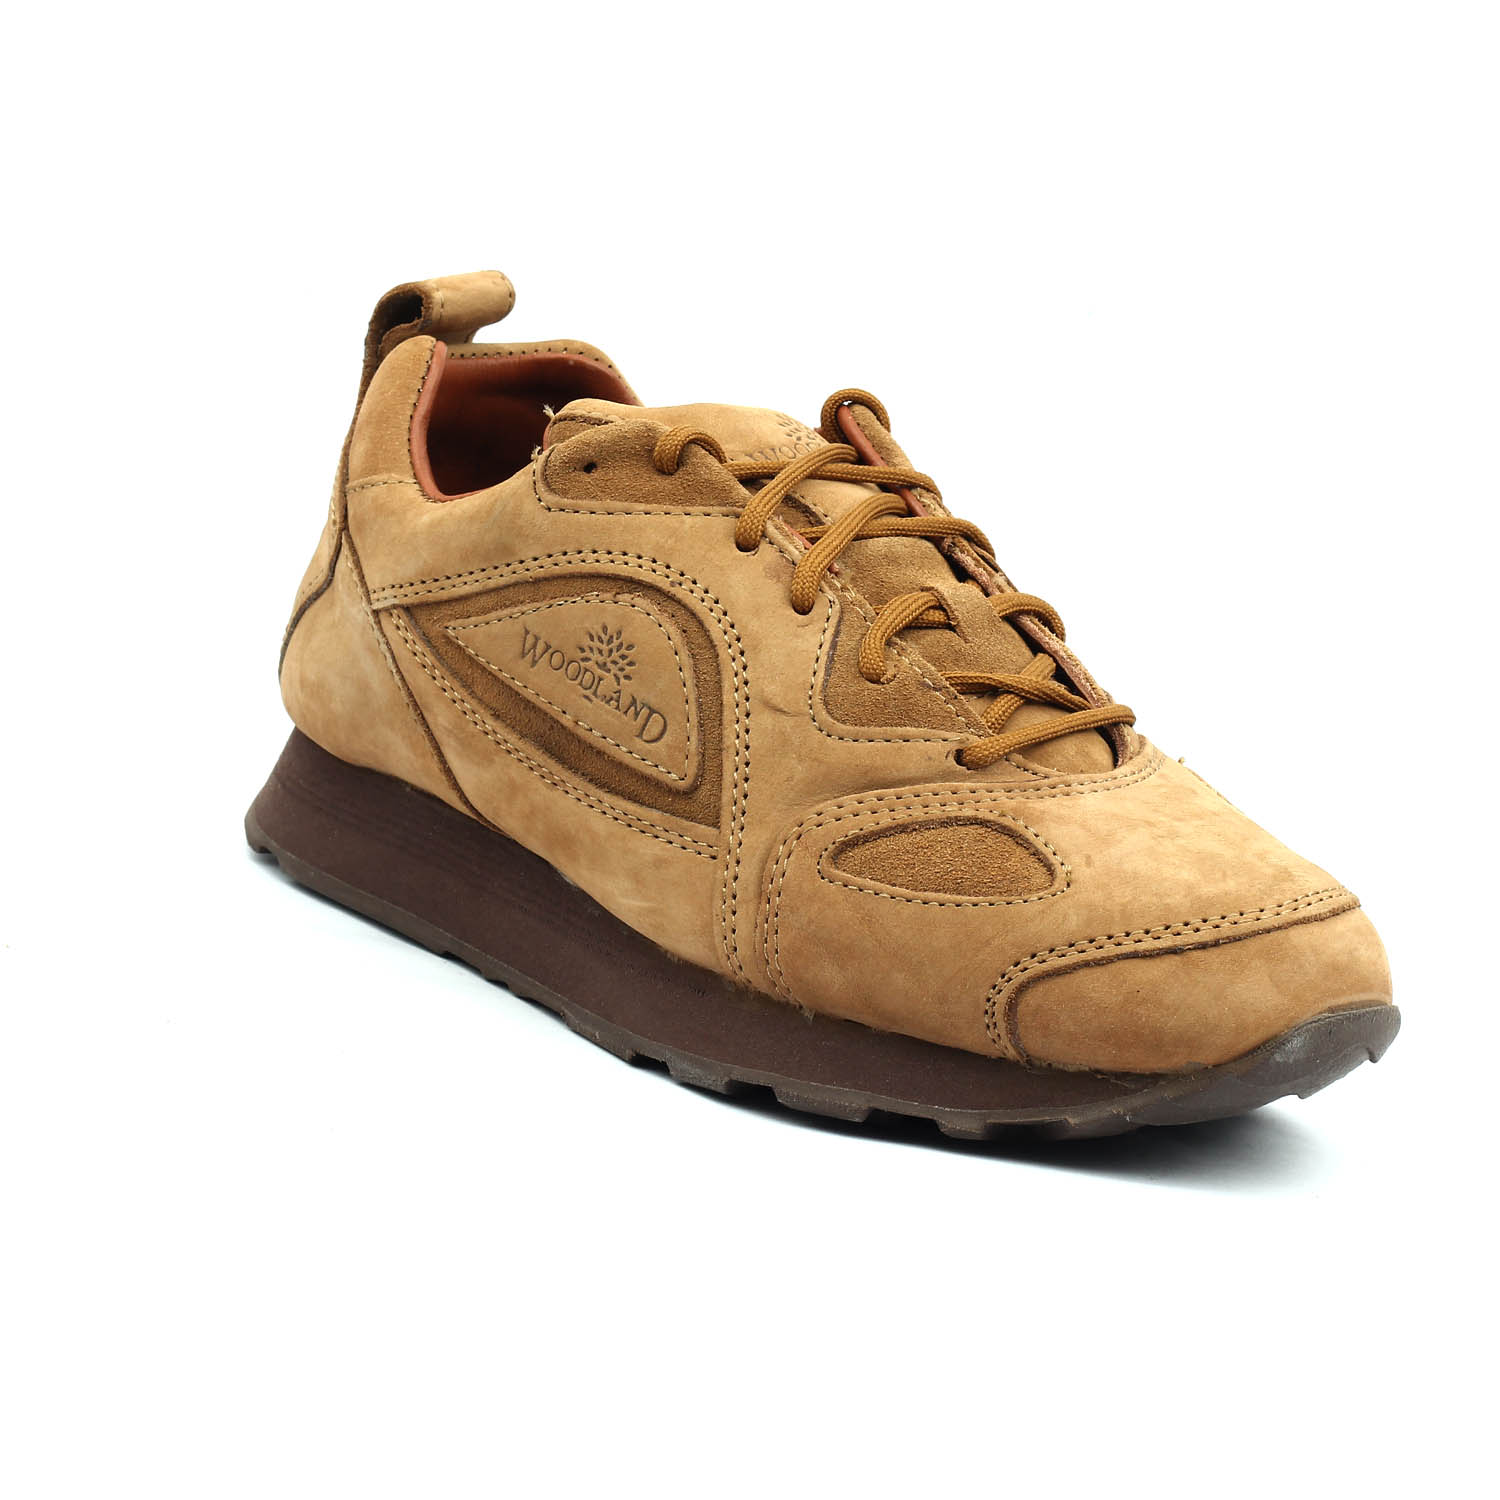 48c3a48e709 Woodland Men's Nubuck Leather Camel Sneakers